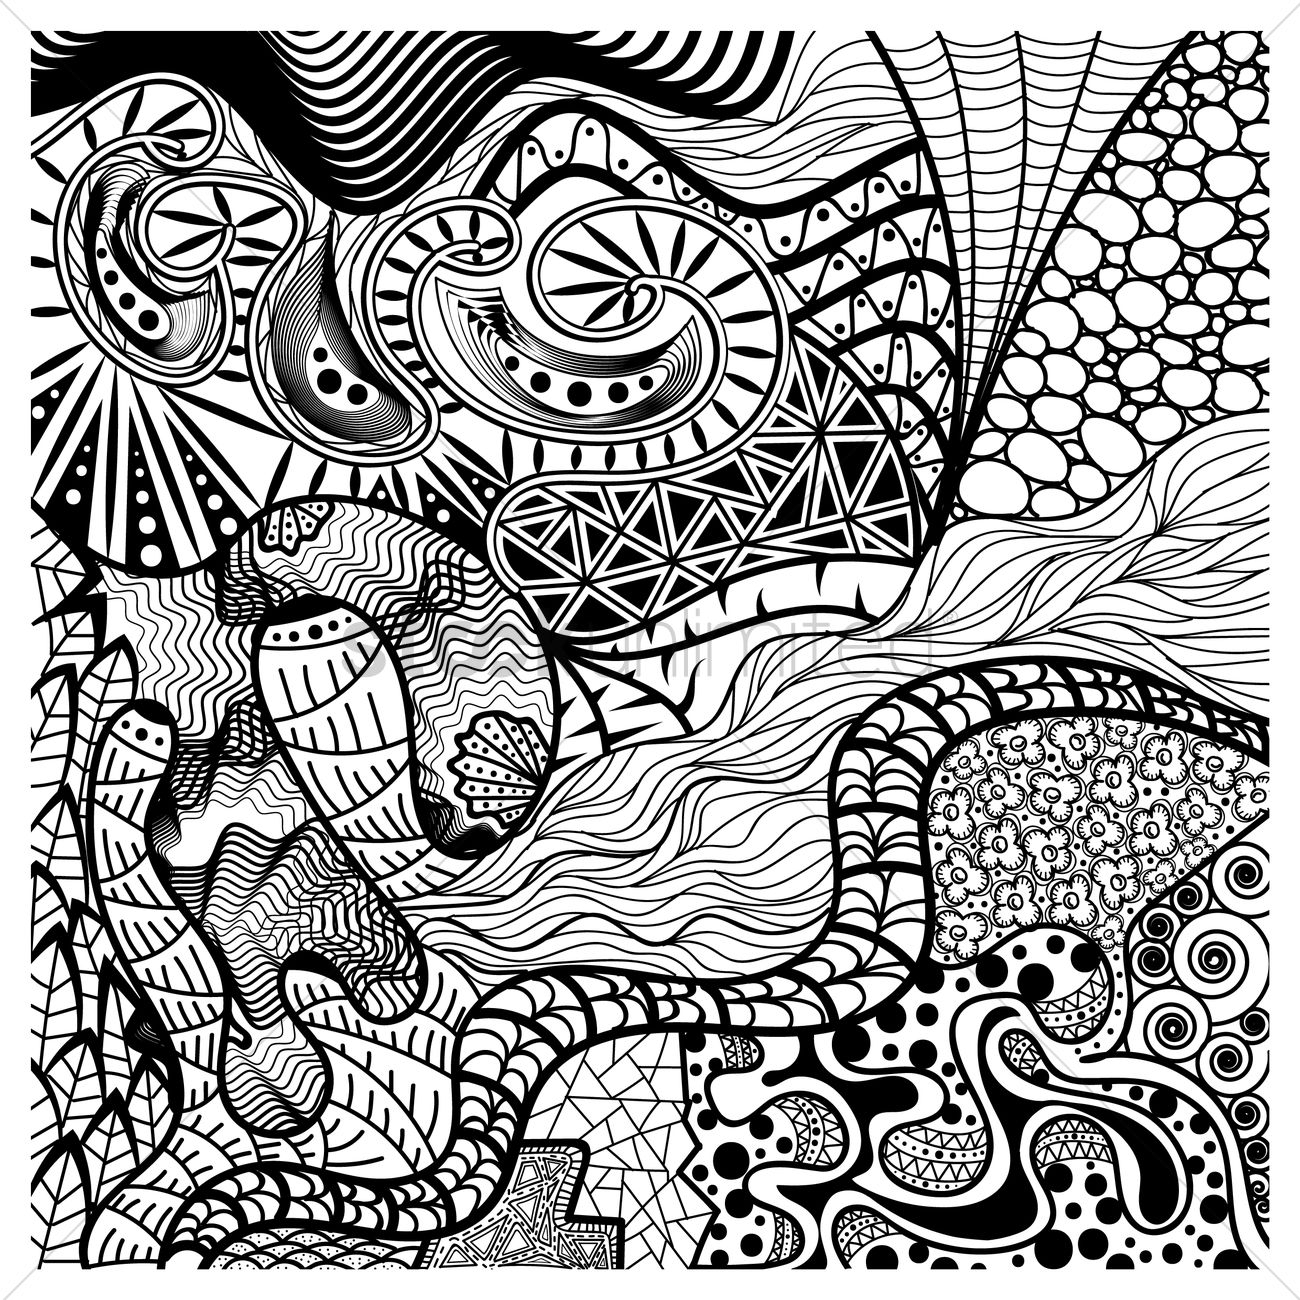 1300x1300 Cool Abstract Designs To Draw Intricate Abstract Design Vector